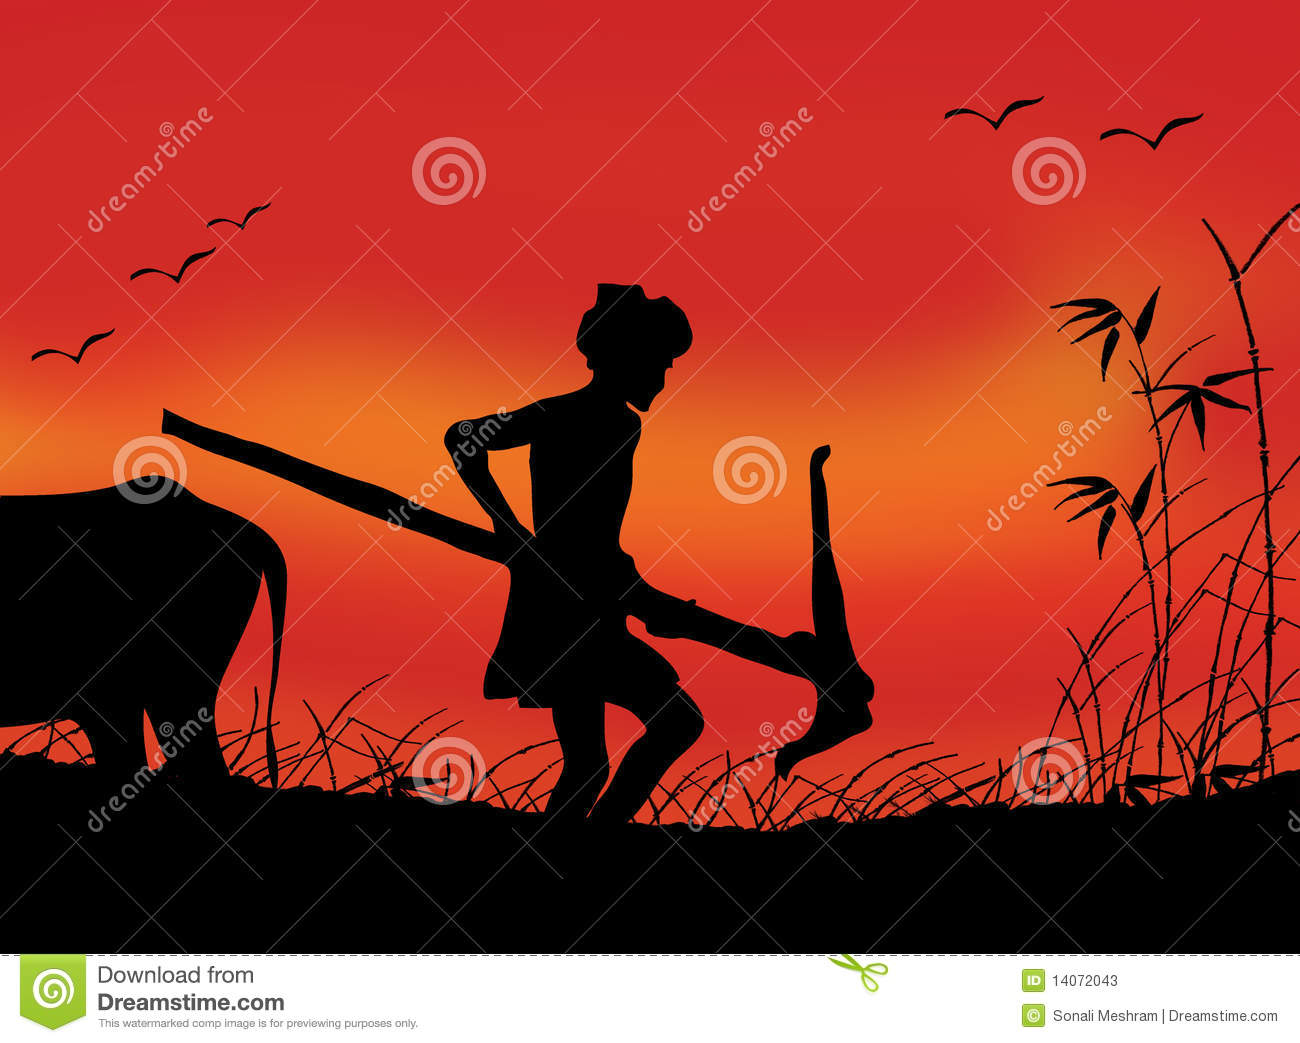 Indian Farmer At Work Stock Photos - Image: 14072043